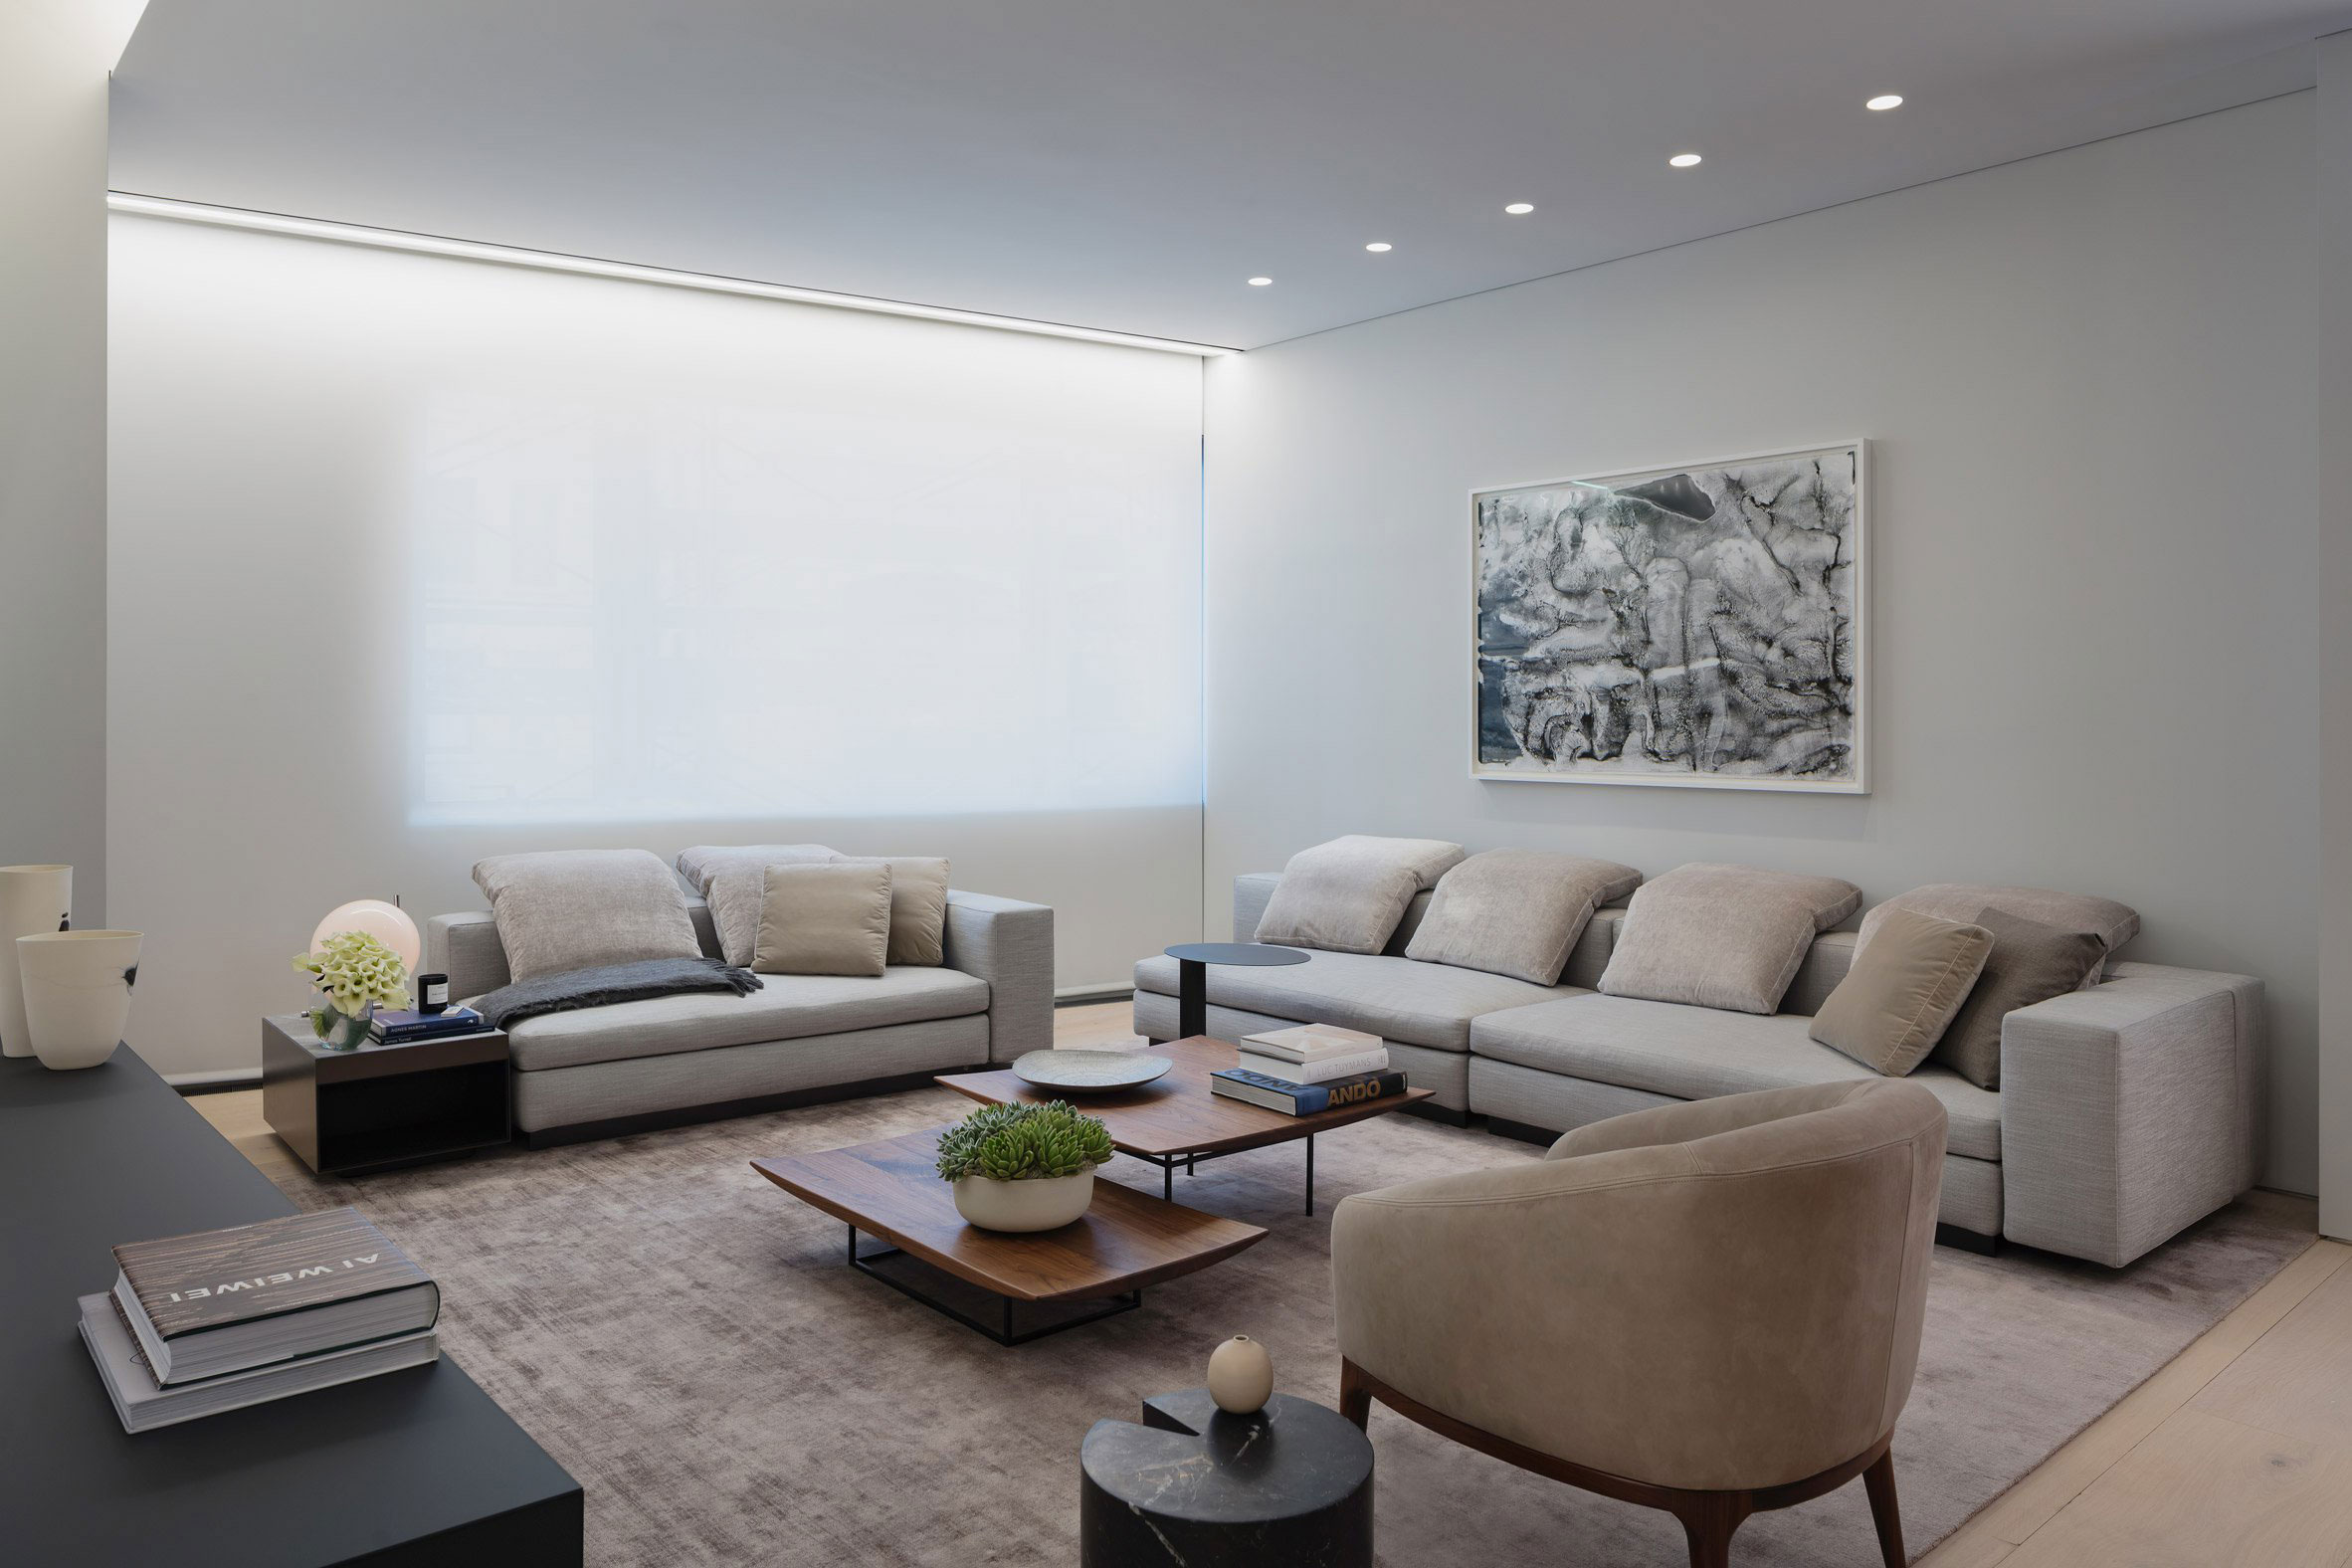 Peaceful and Elegant Apartment Designed by 152 Elizabeth Located in New York, USA